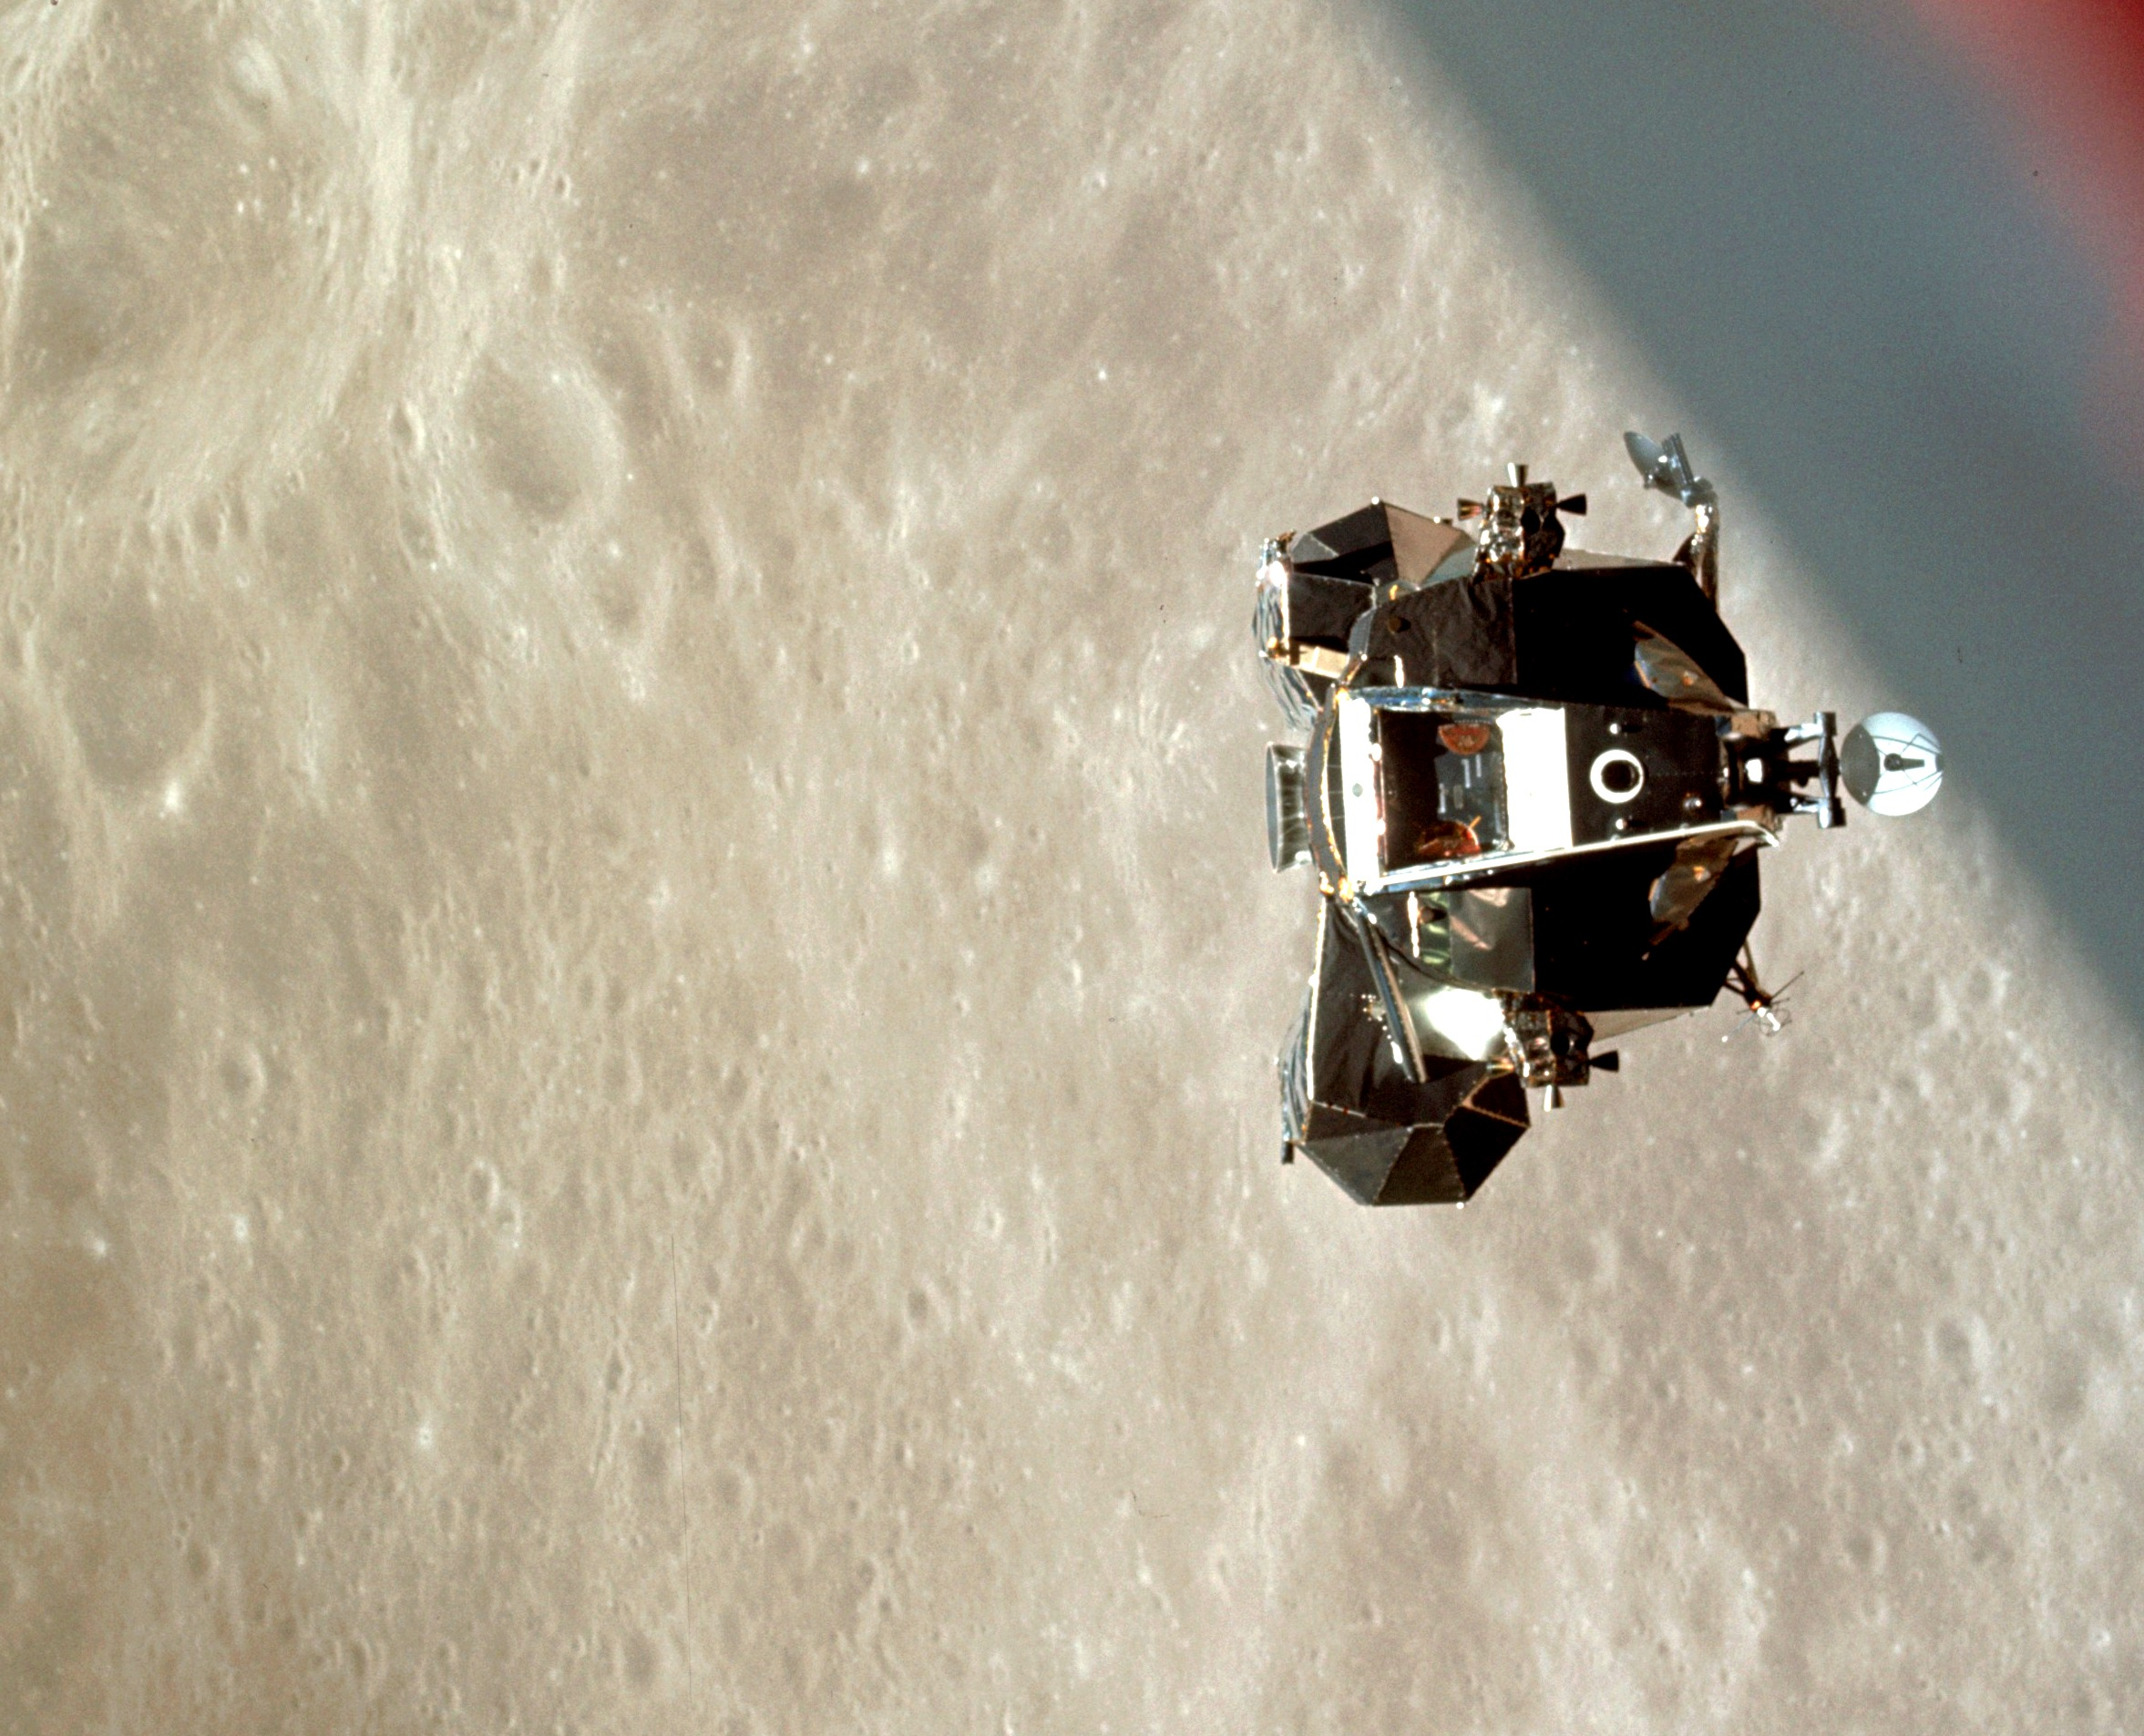 Apollo 10 Anniversary Catapults Next Step | NASA